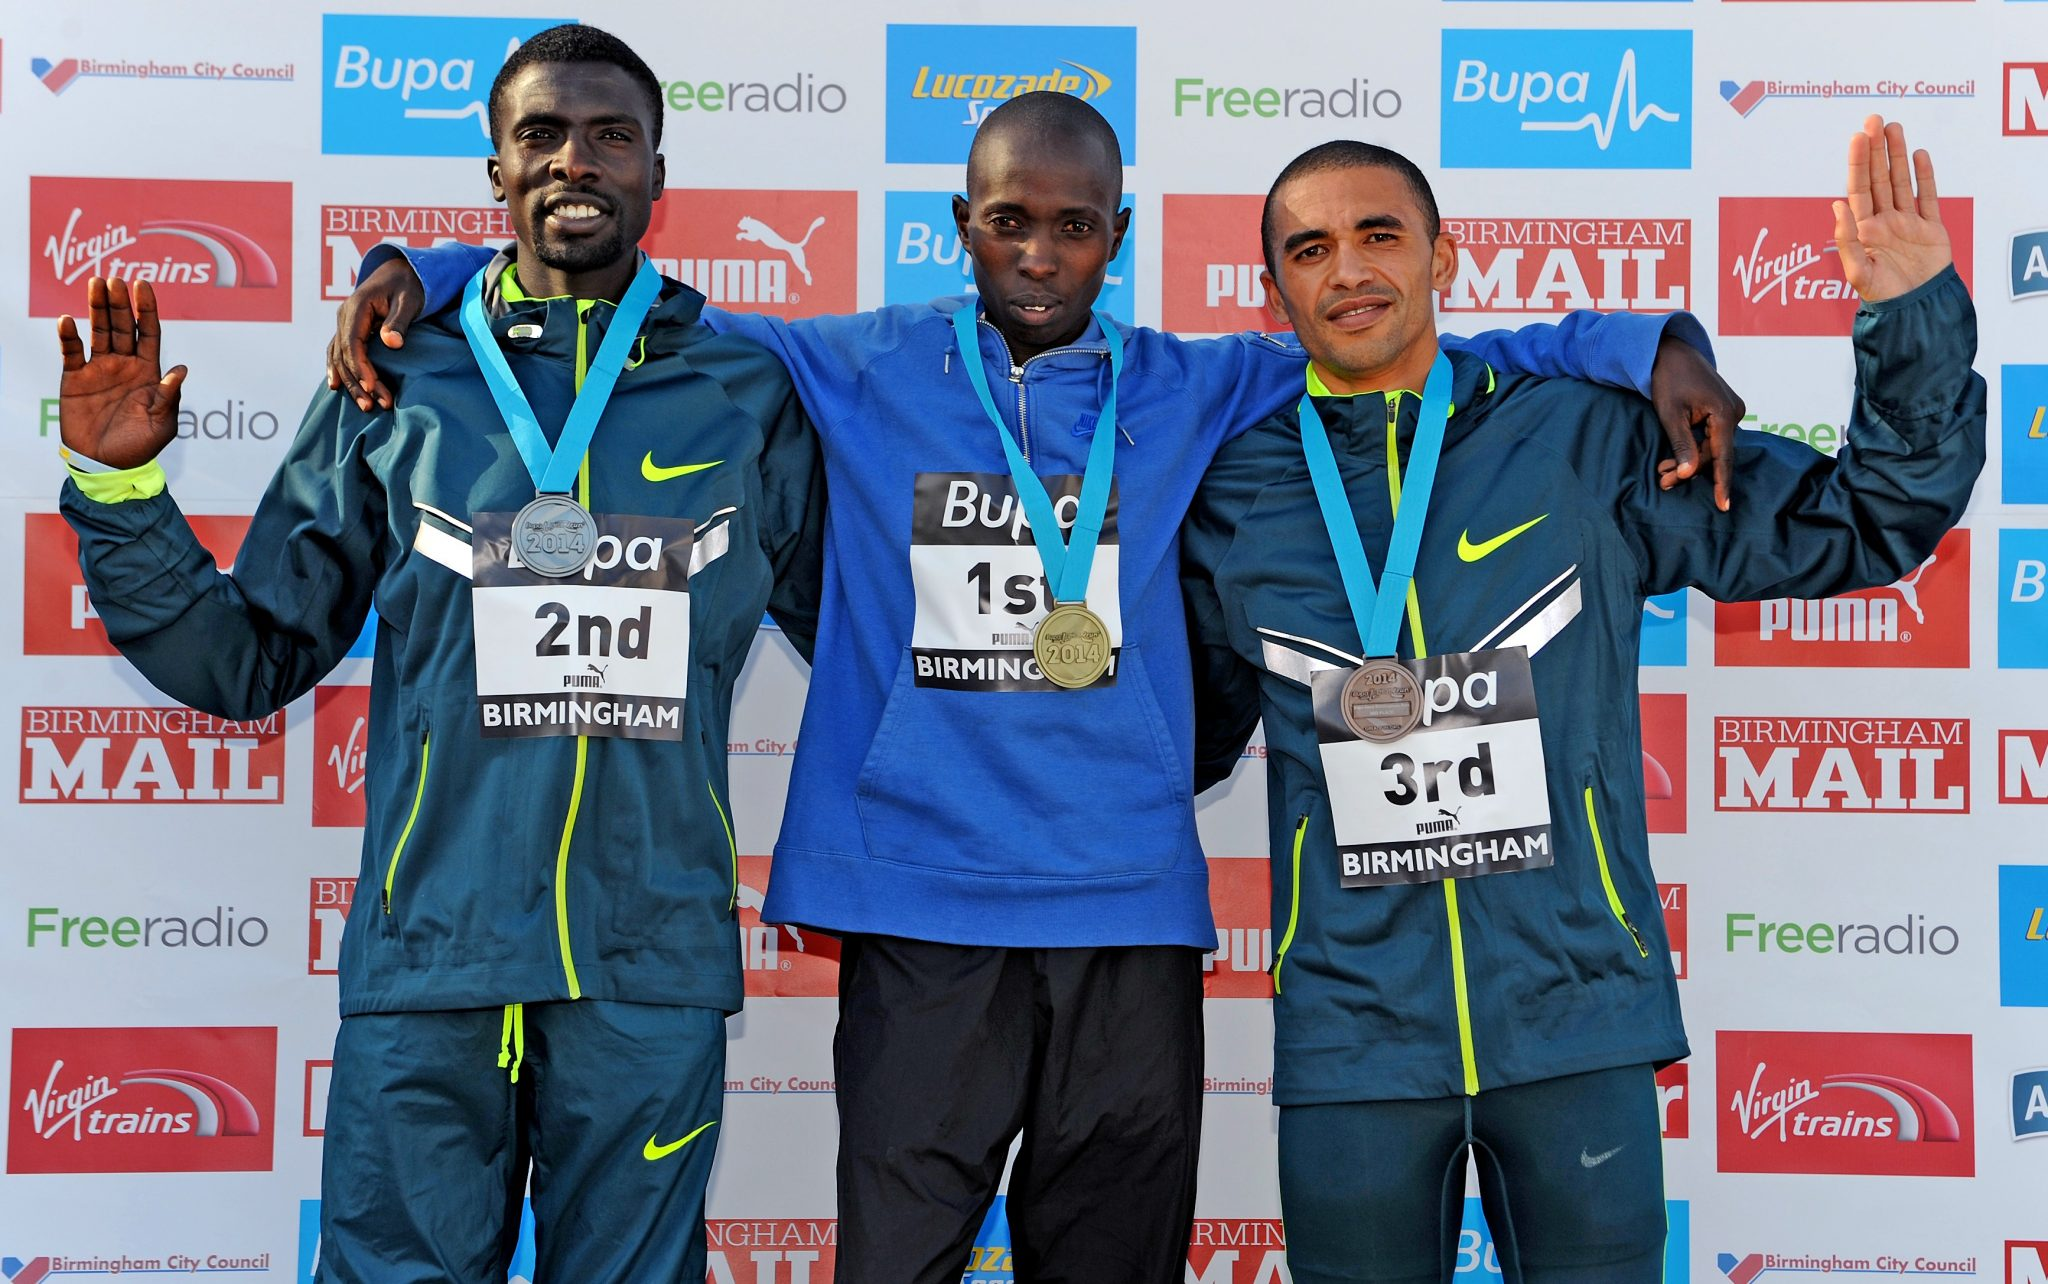 d81be0ab263e FC Barcelona runners are main contenders in Morrisons Great Birmingham Run